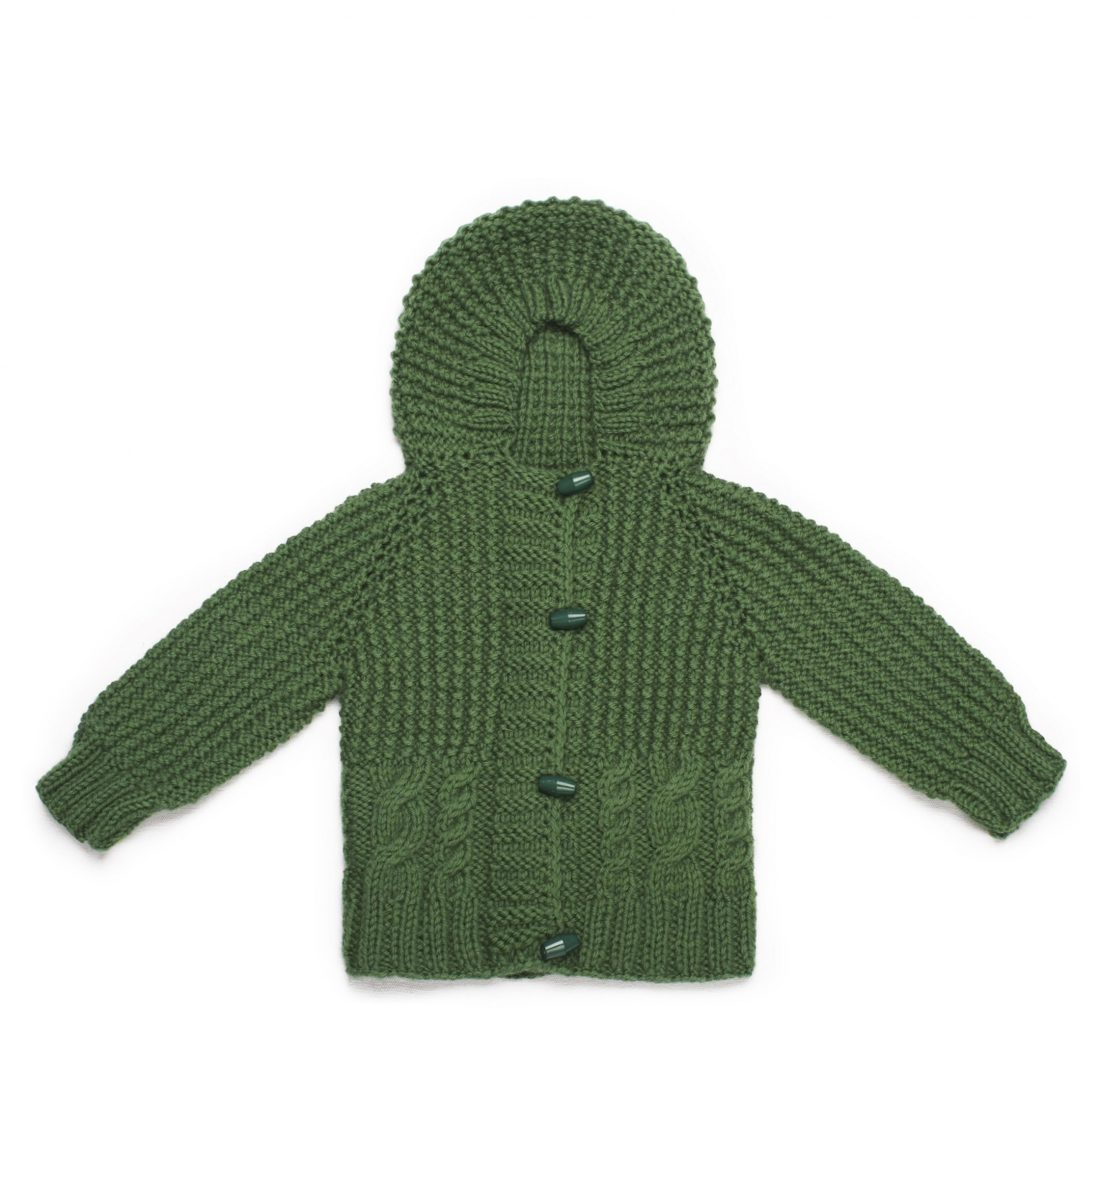 Long Sleeve Hooded Knitted Cardigan 1025